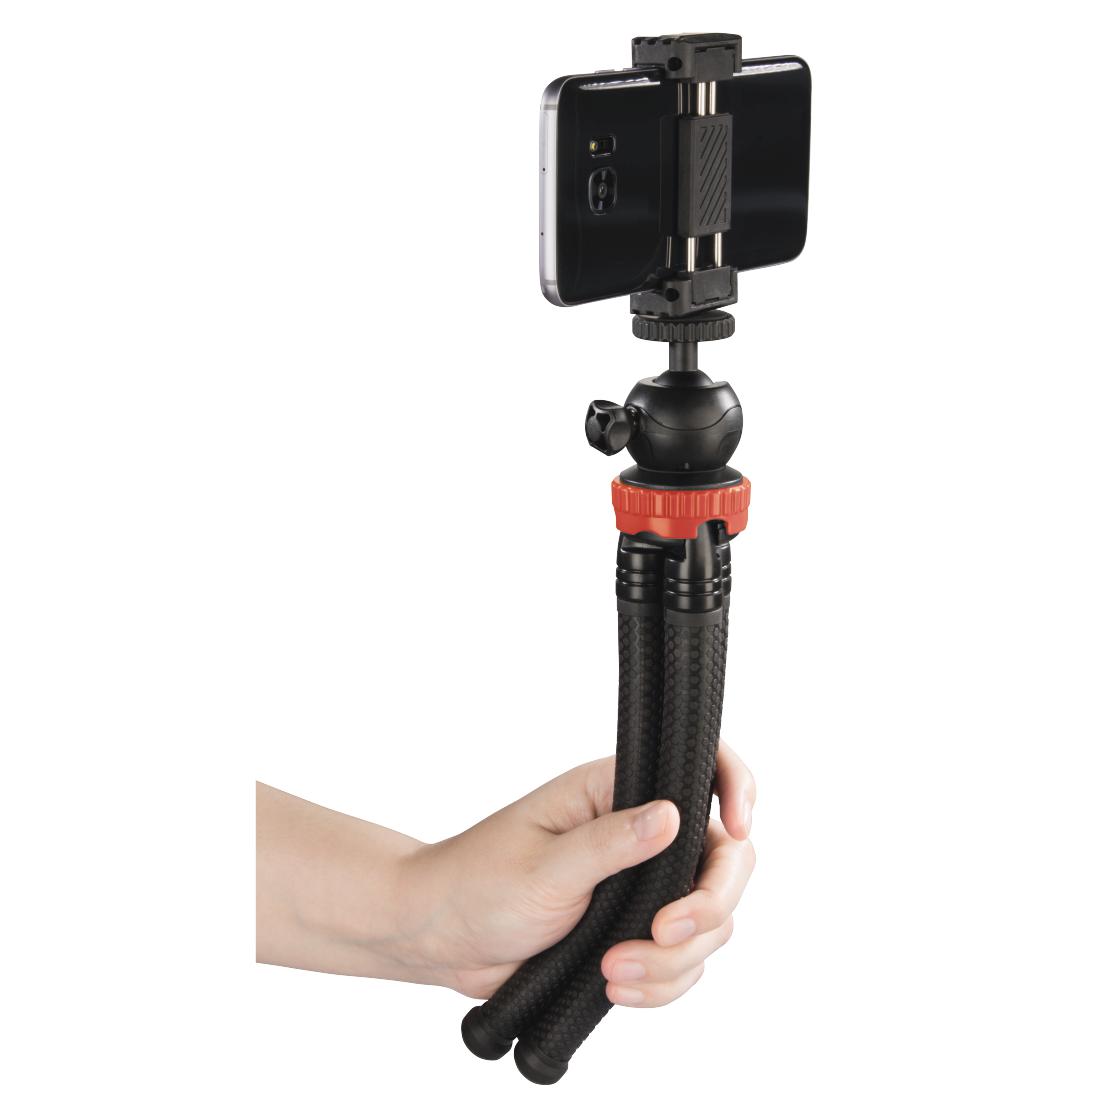 abx5 High-Res Image 5 - Hama, FlexPro Tripod for Smartphone, GoPro and Photo Cameras, 27 cm, red